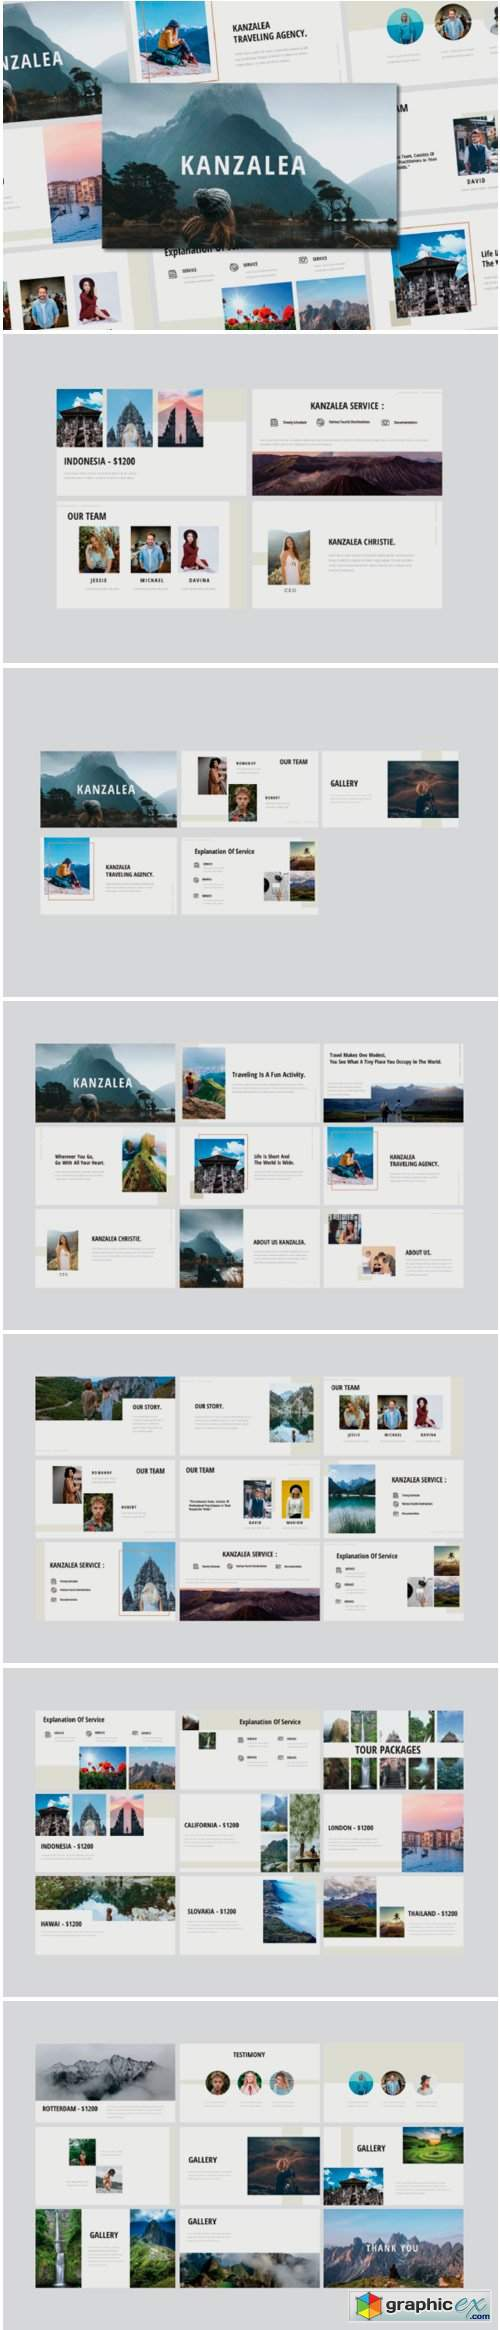 Kanzalea Powerpoint Presentation Template